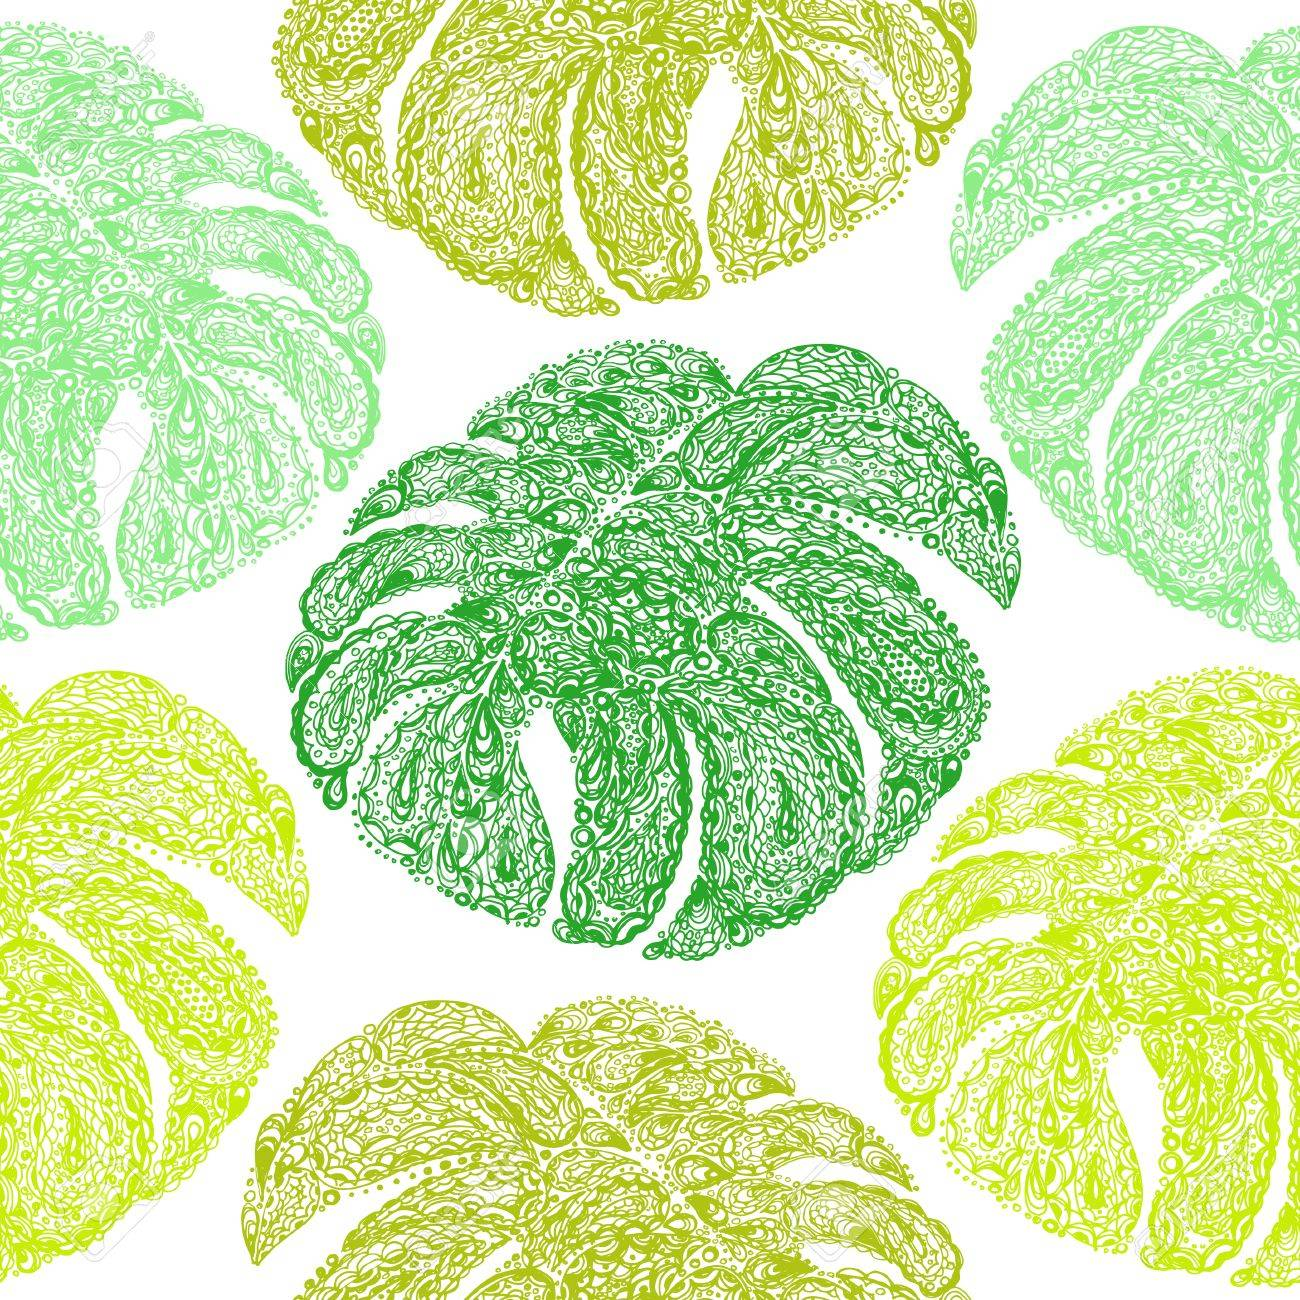 Monstera Leaves Illustration In Paisley Style Tropical Jungle Plant Vector Wallpaper Seamless Textile Pattern